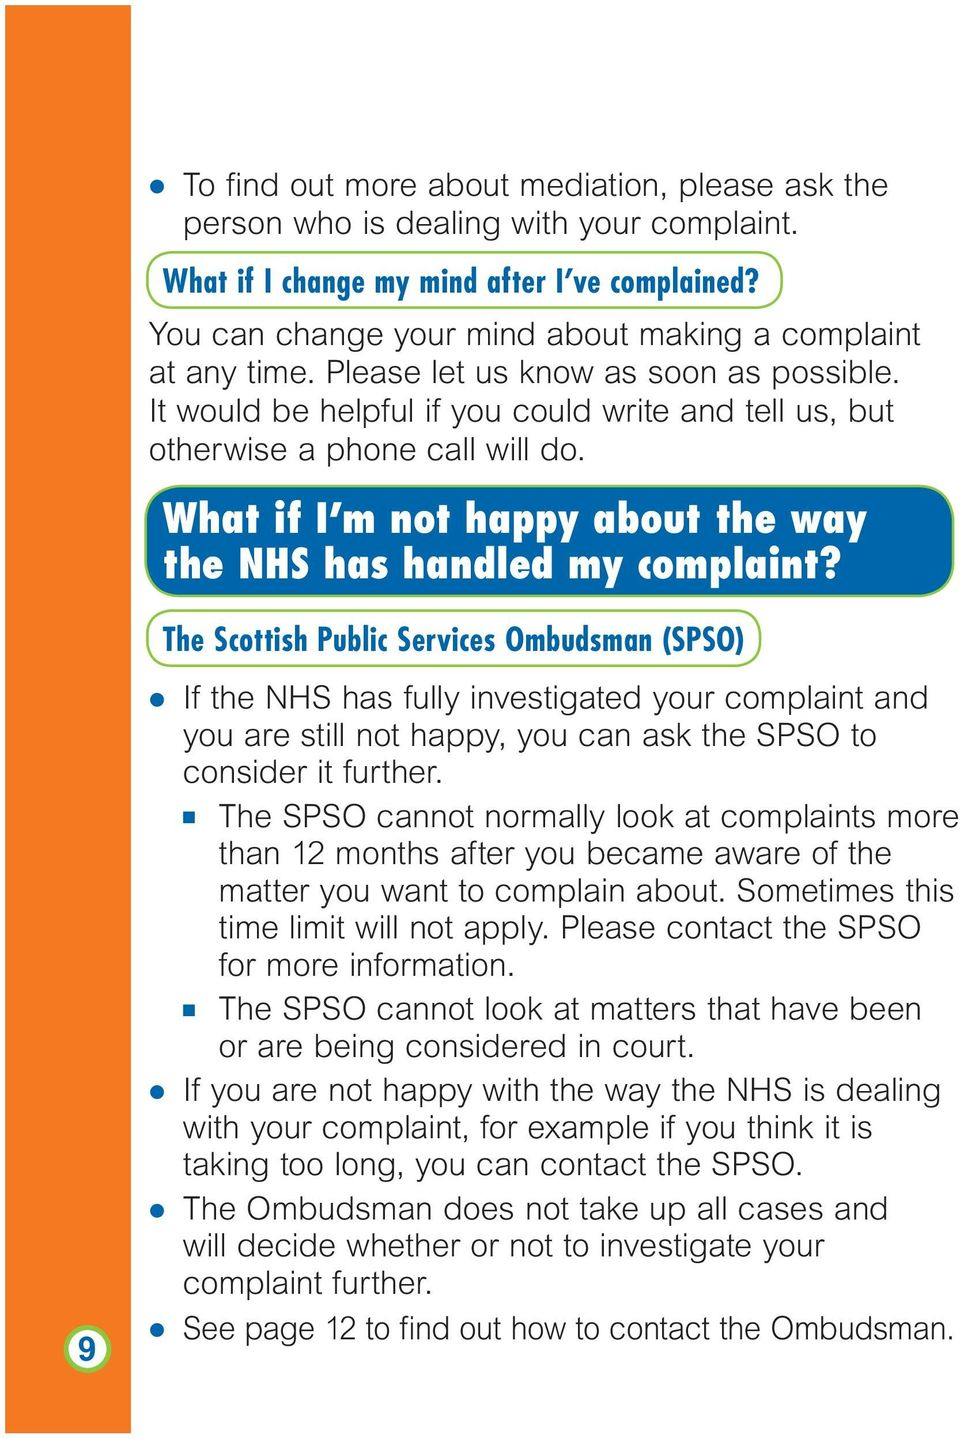 What if I m not happy about the way the NHS has handled my complaint?